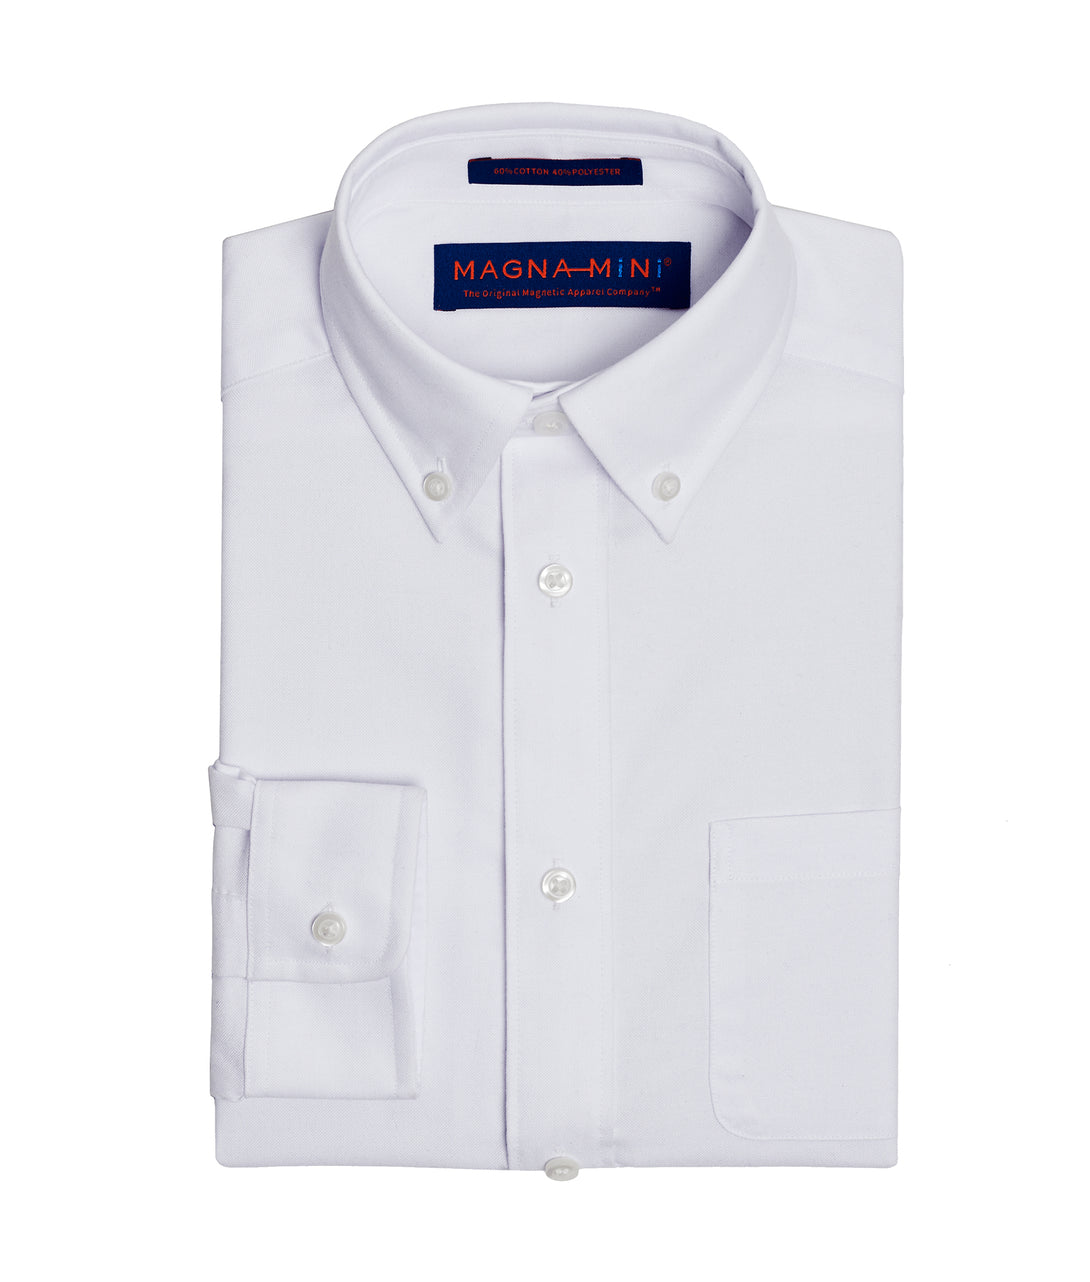 Boys White Oxford Long Sleeve Shirt with Magnetic Closures | JUNIPERunltd